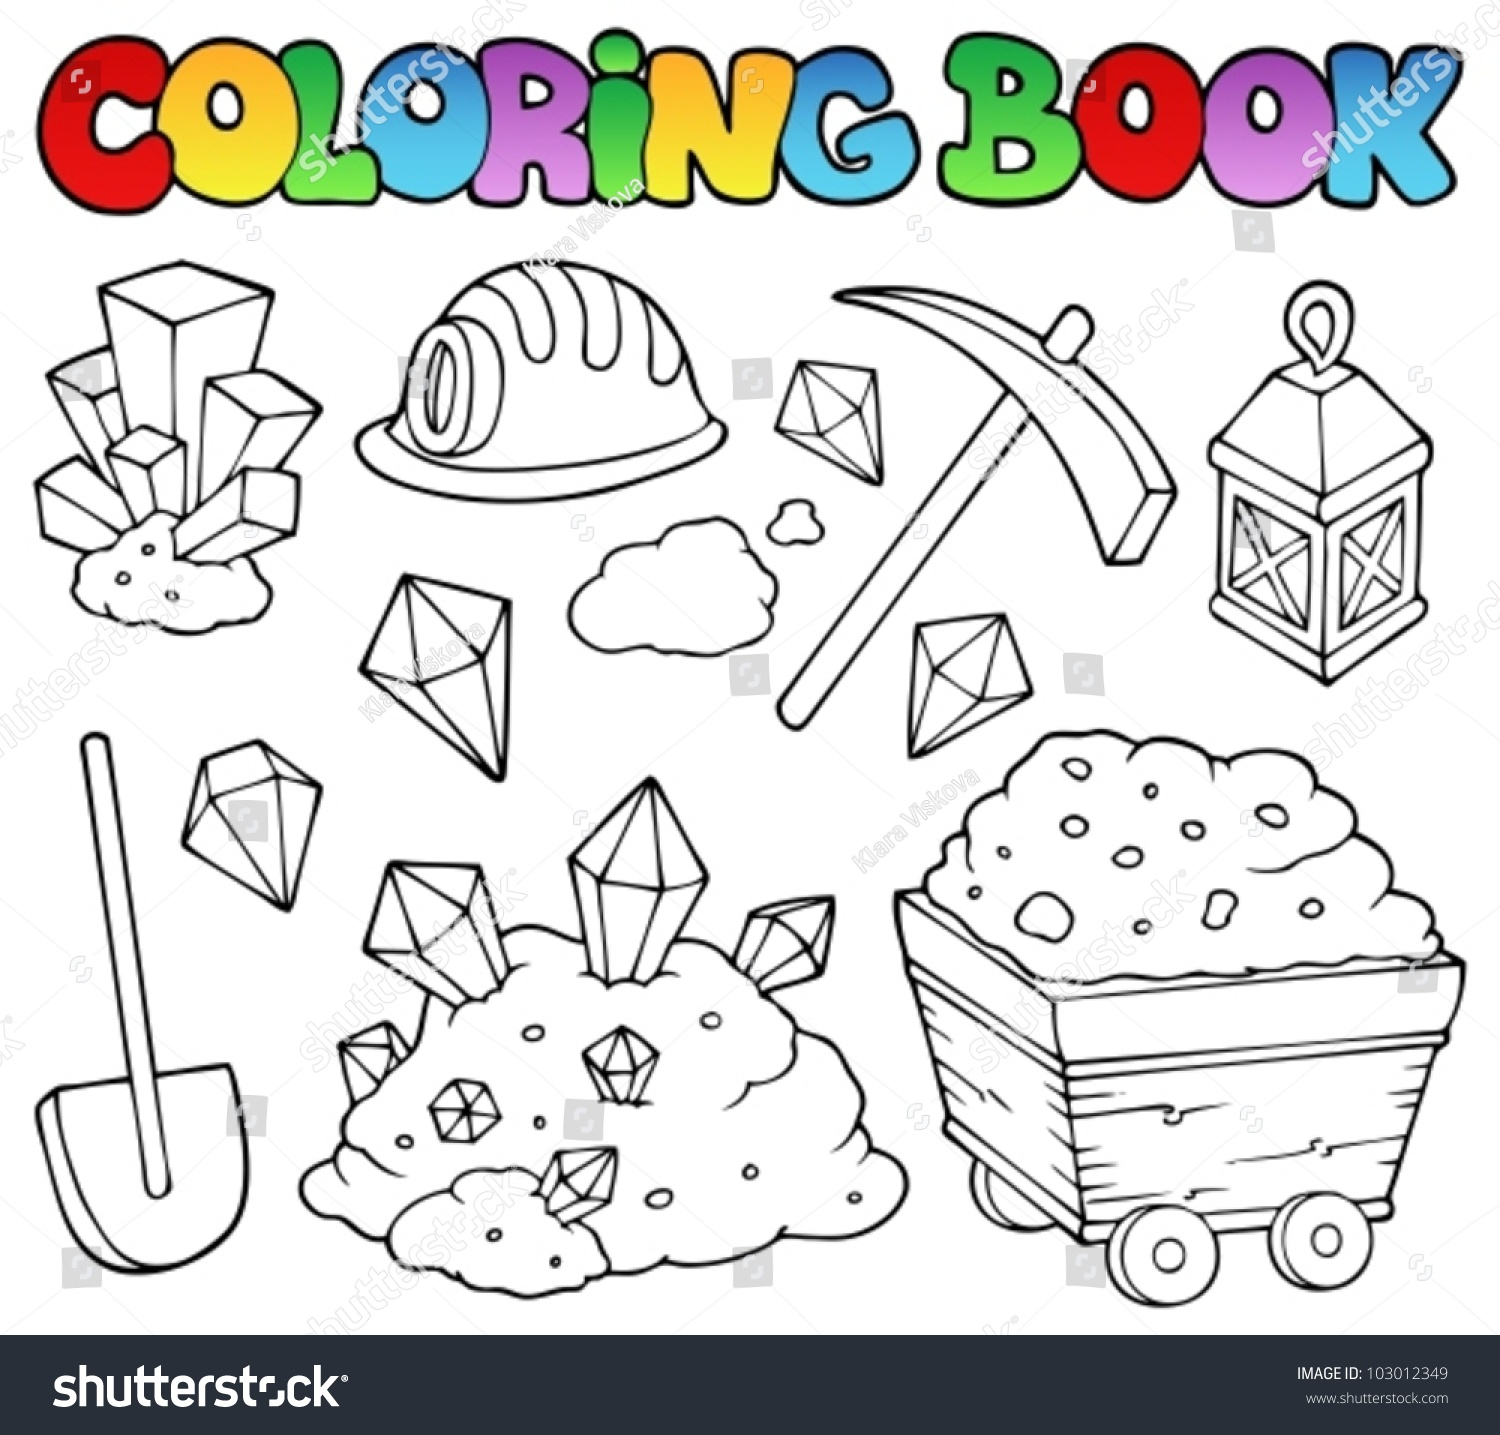 Coloring Pages Rocks And Minerals Coloring Pages coloring book mining collection 1 vector stock 103012349 illustration